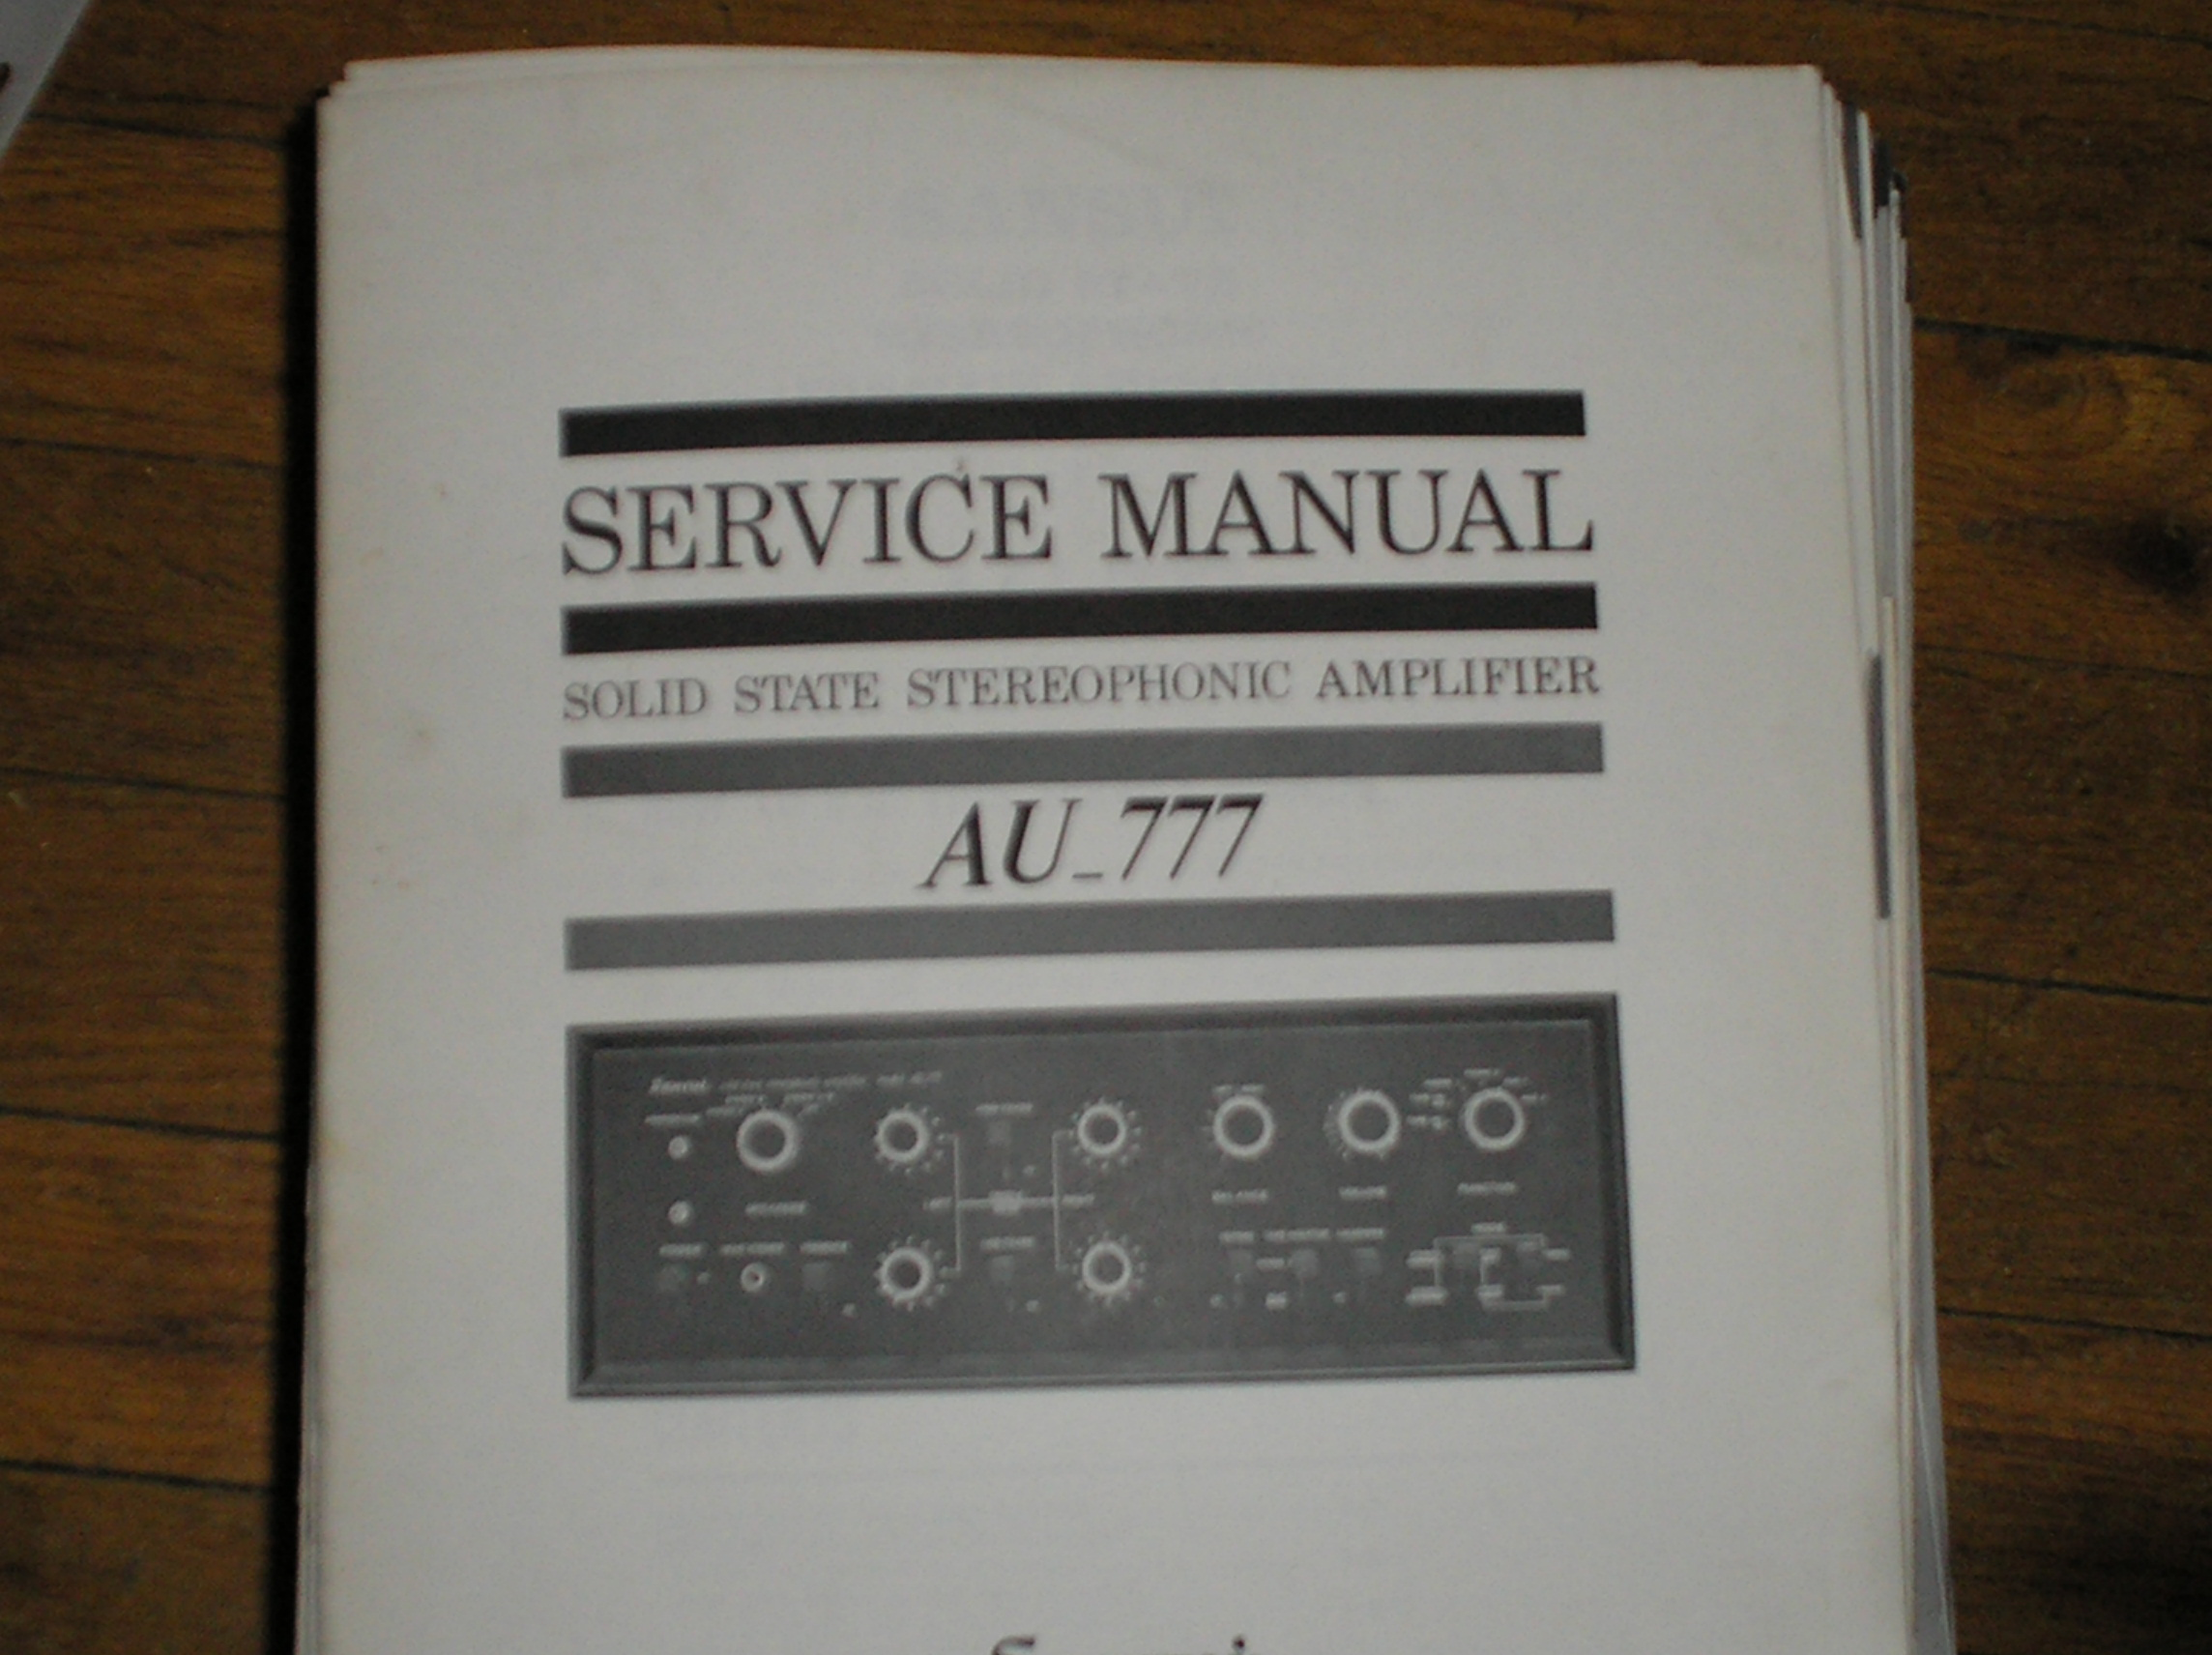 AU-777 Amplifier Service Manual